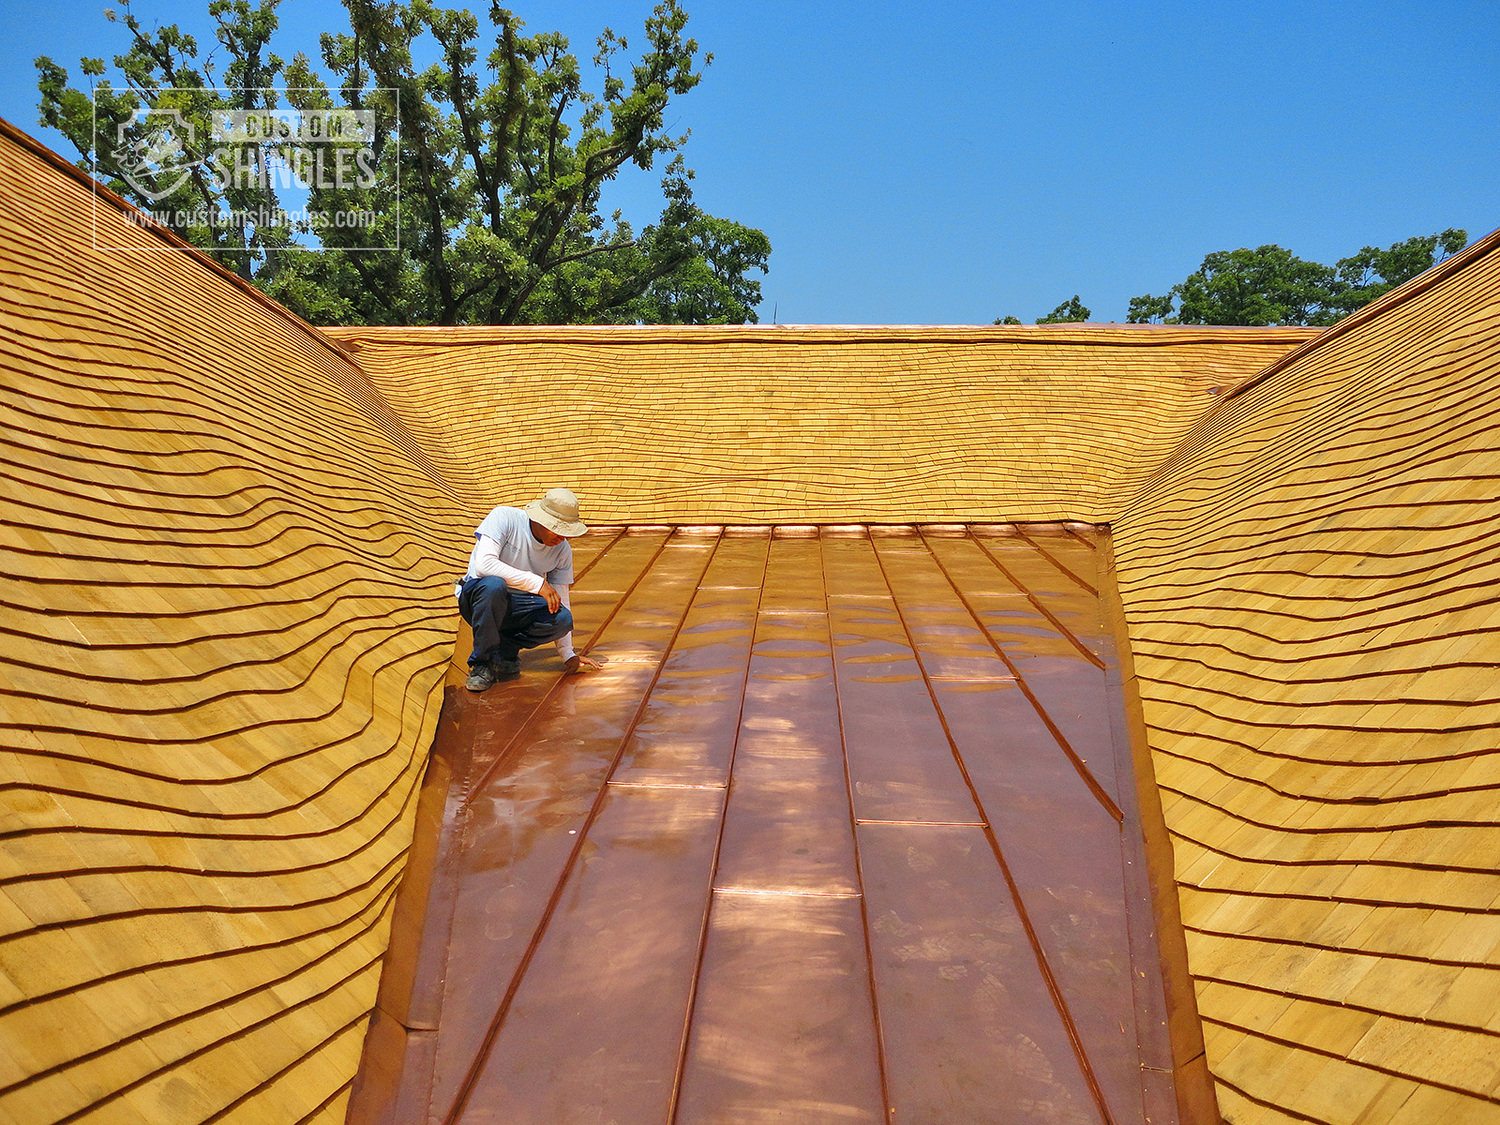 wood shingle installation process